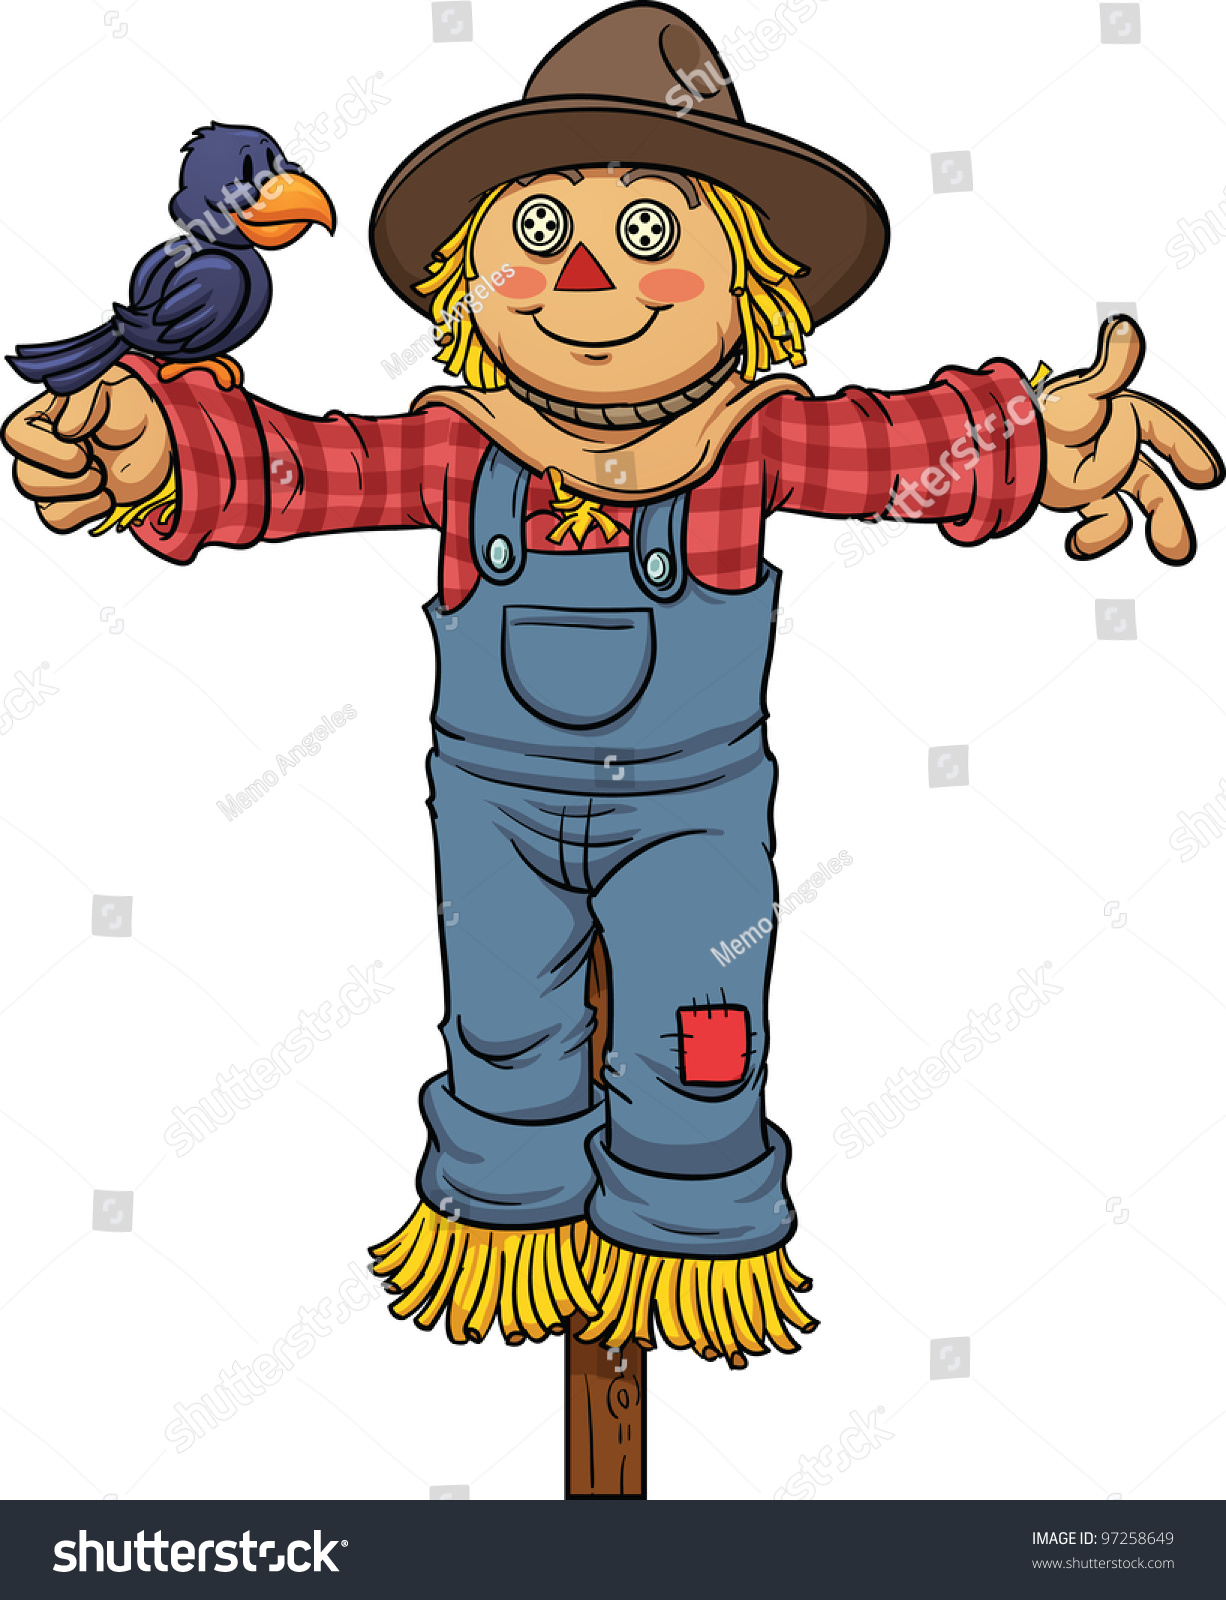 Cartoon scarecrow vector illustration with simple gradients all in a